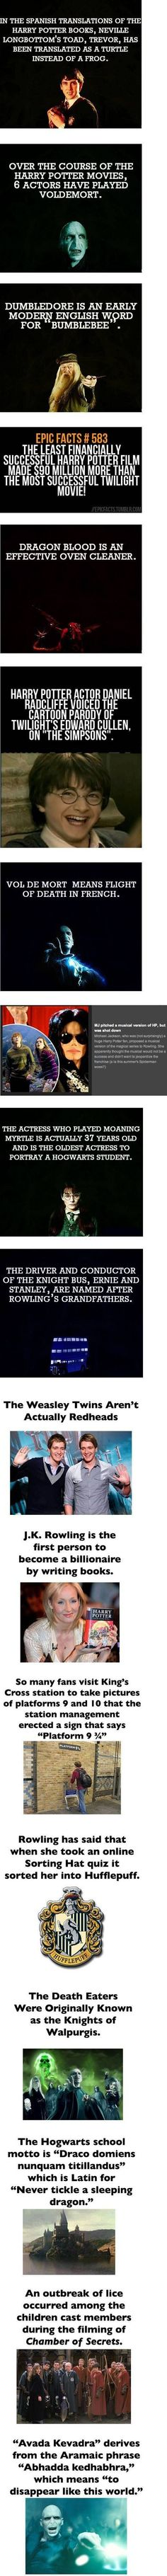 Harry Potter fun facts, anyone?